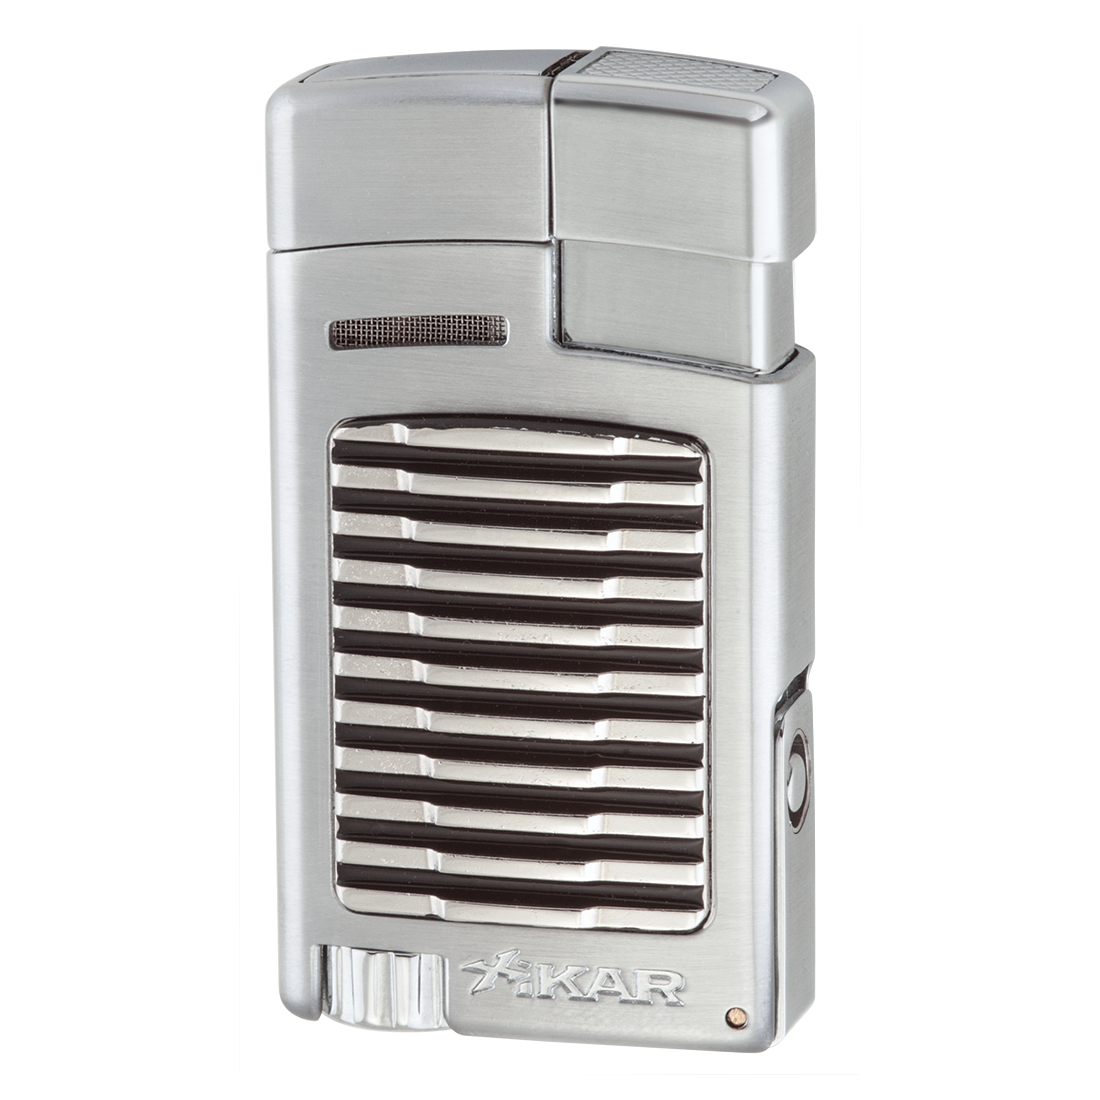 Xikar Forte Silver Single Jet Lighter